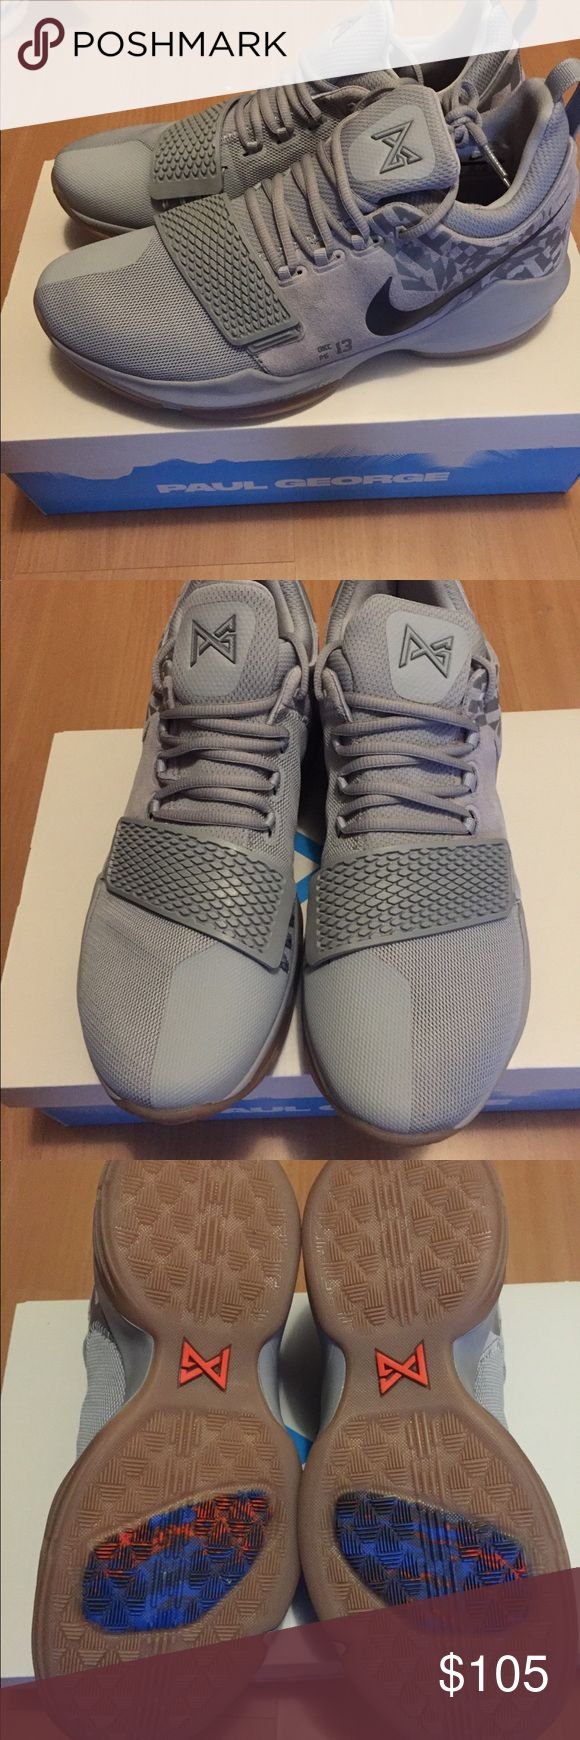 Brand new Pg1 Paul George Grey 11 Brand new Pg1 Paul George Grey 11. Size 11. Brand new in box, never worn Nike Shoes Sneakers